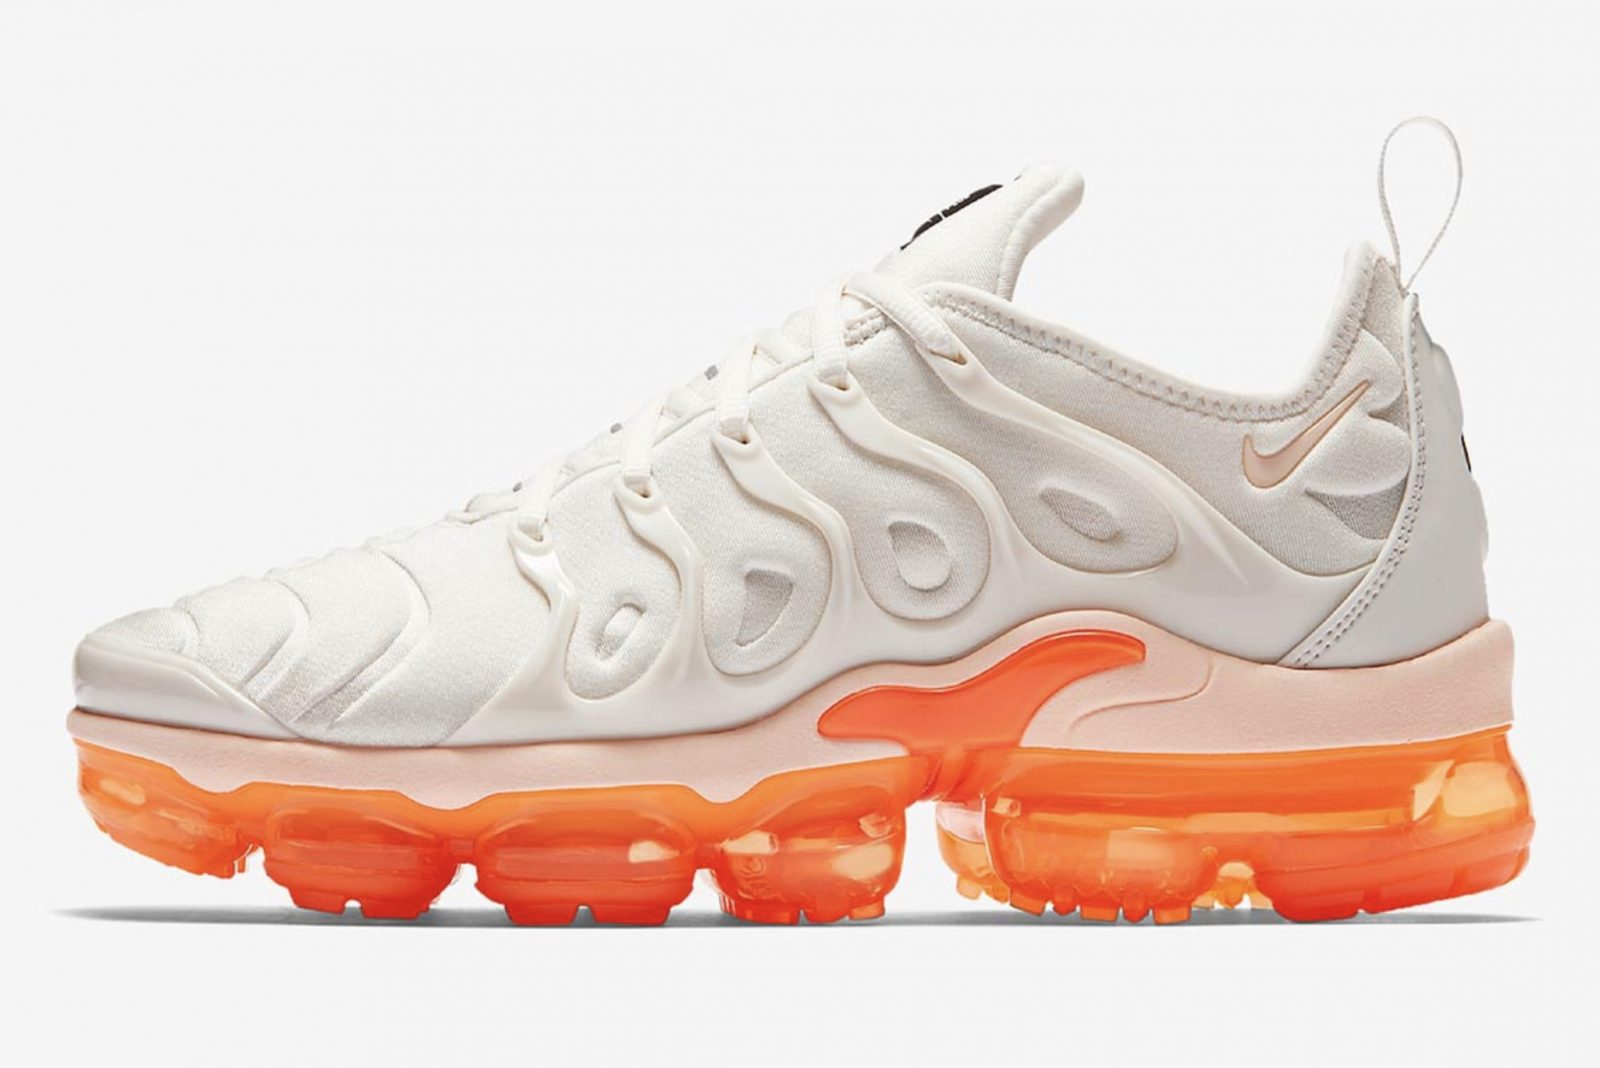 6c0989678e Nike Air VaporMax Plus Wmns Creamsicle | AO4550-005 | The Sole Womens